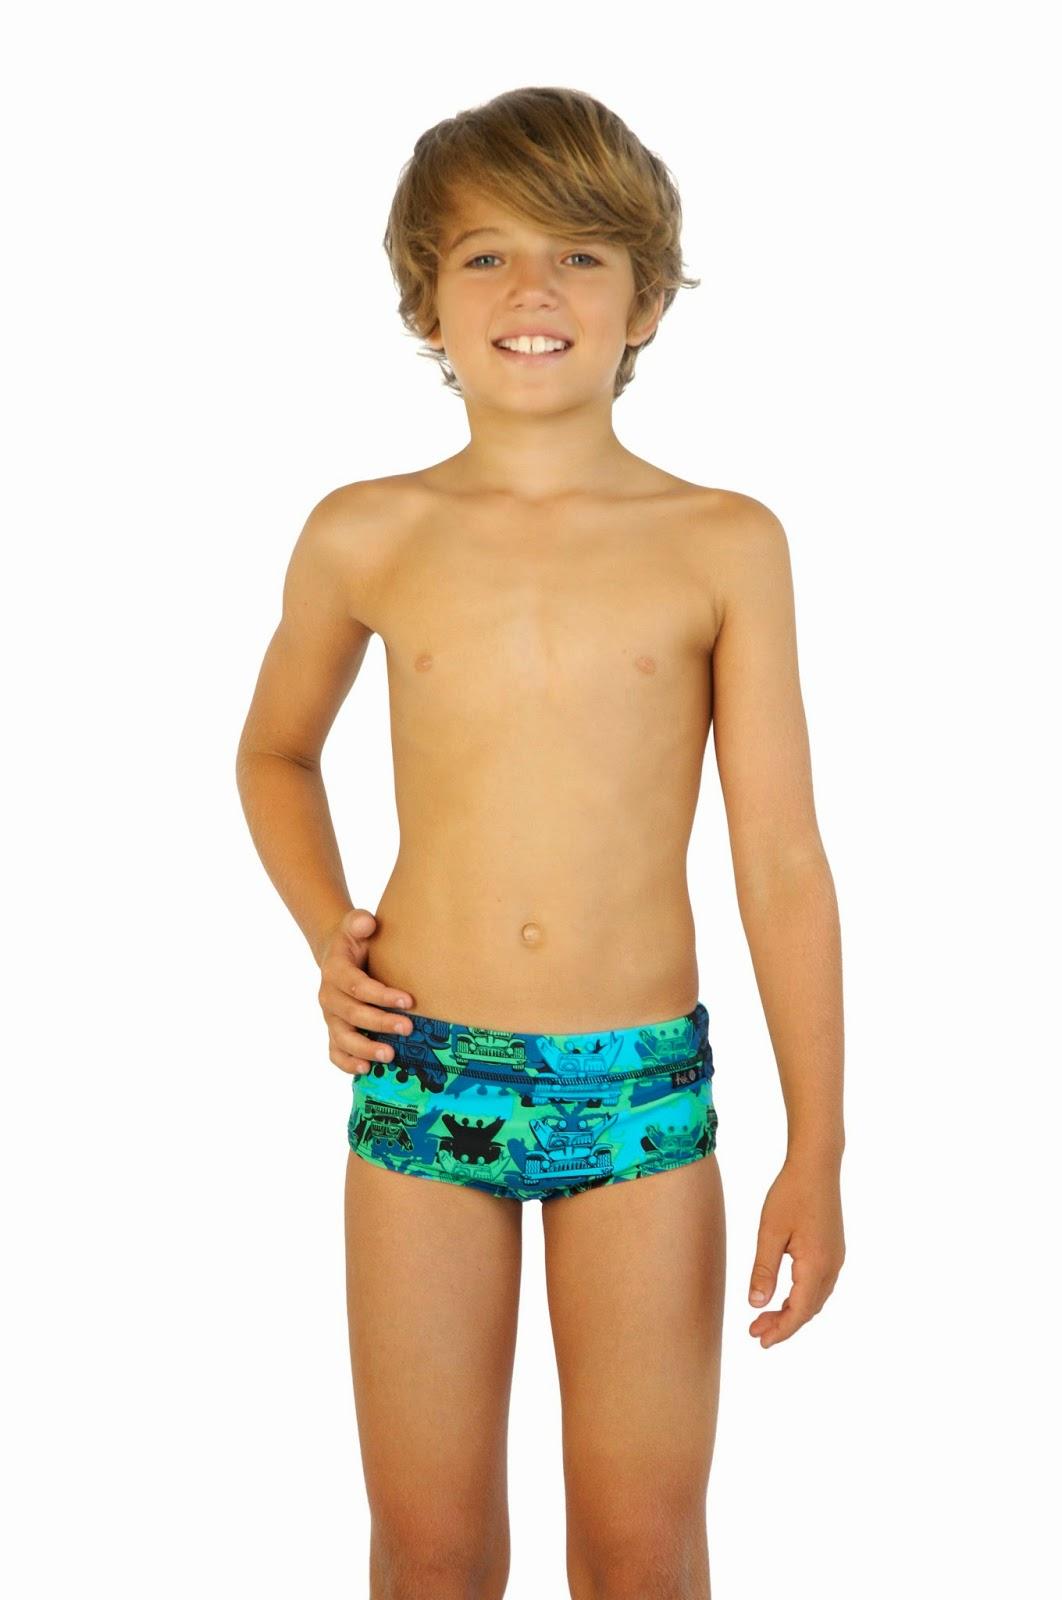 Swim Jammer - Boys Youth Sizes 21 to 32 in Black, Navy, and Blue